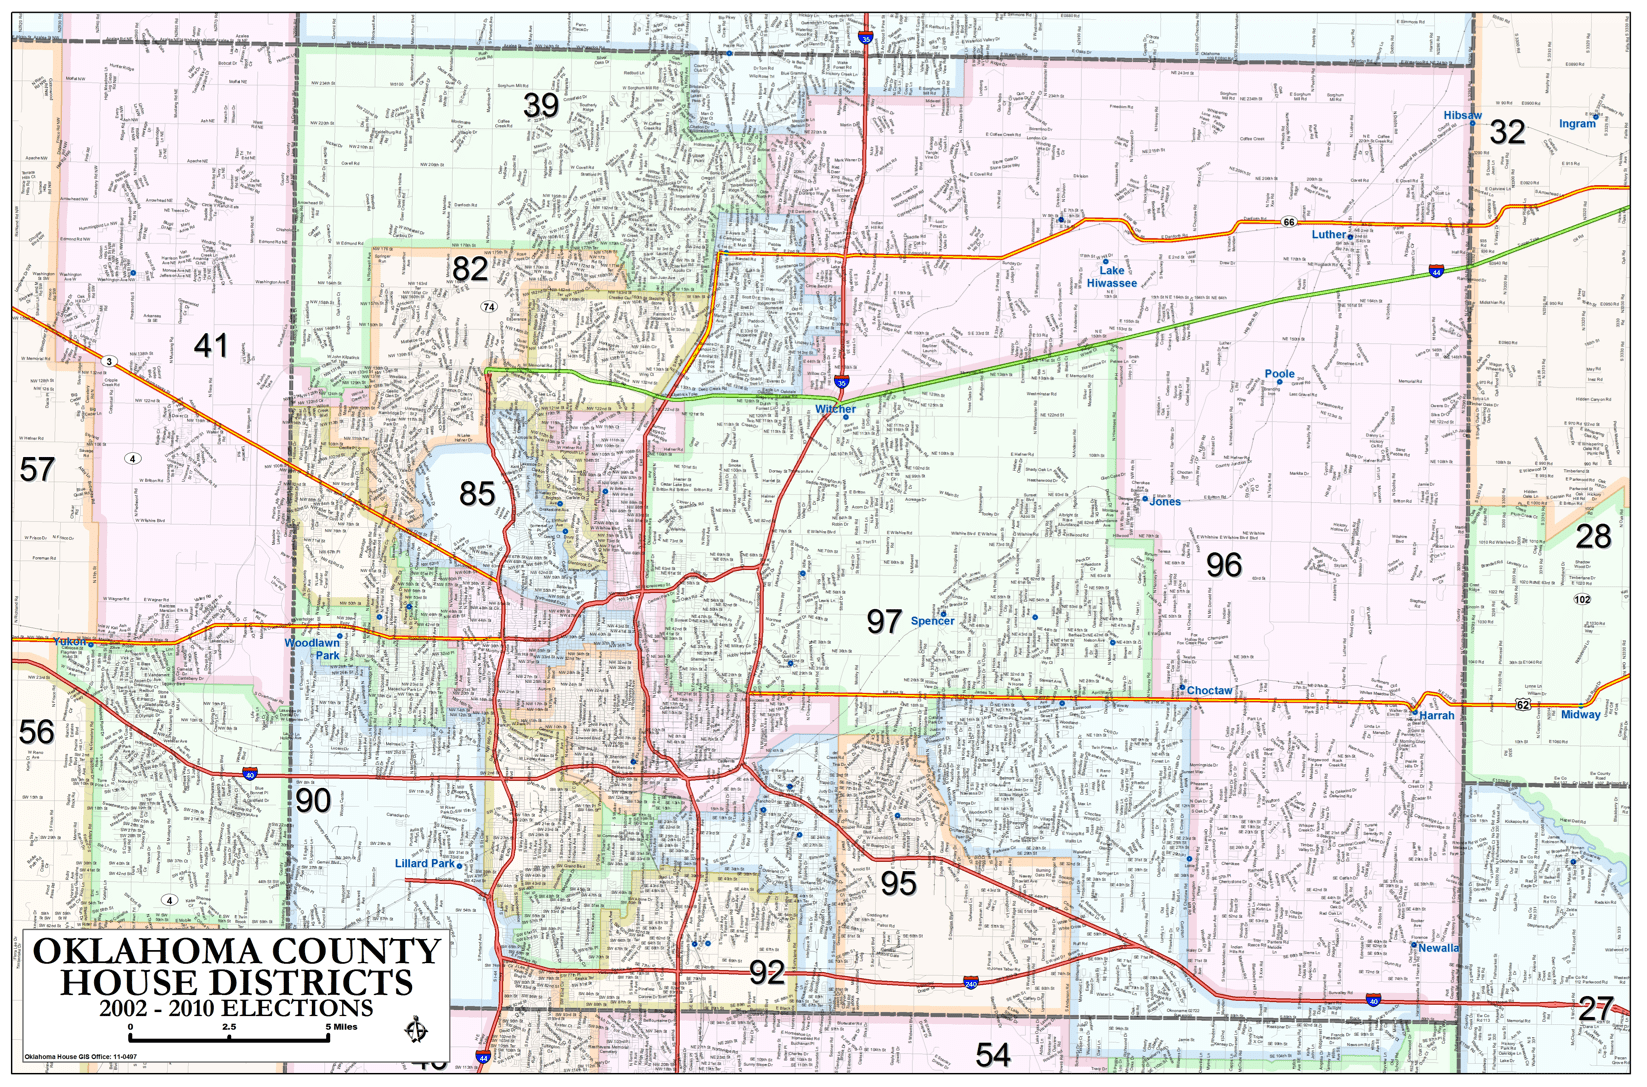 Oklahoma County House Districts Metro Area Map OKG News - Oklahoma county map